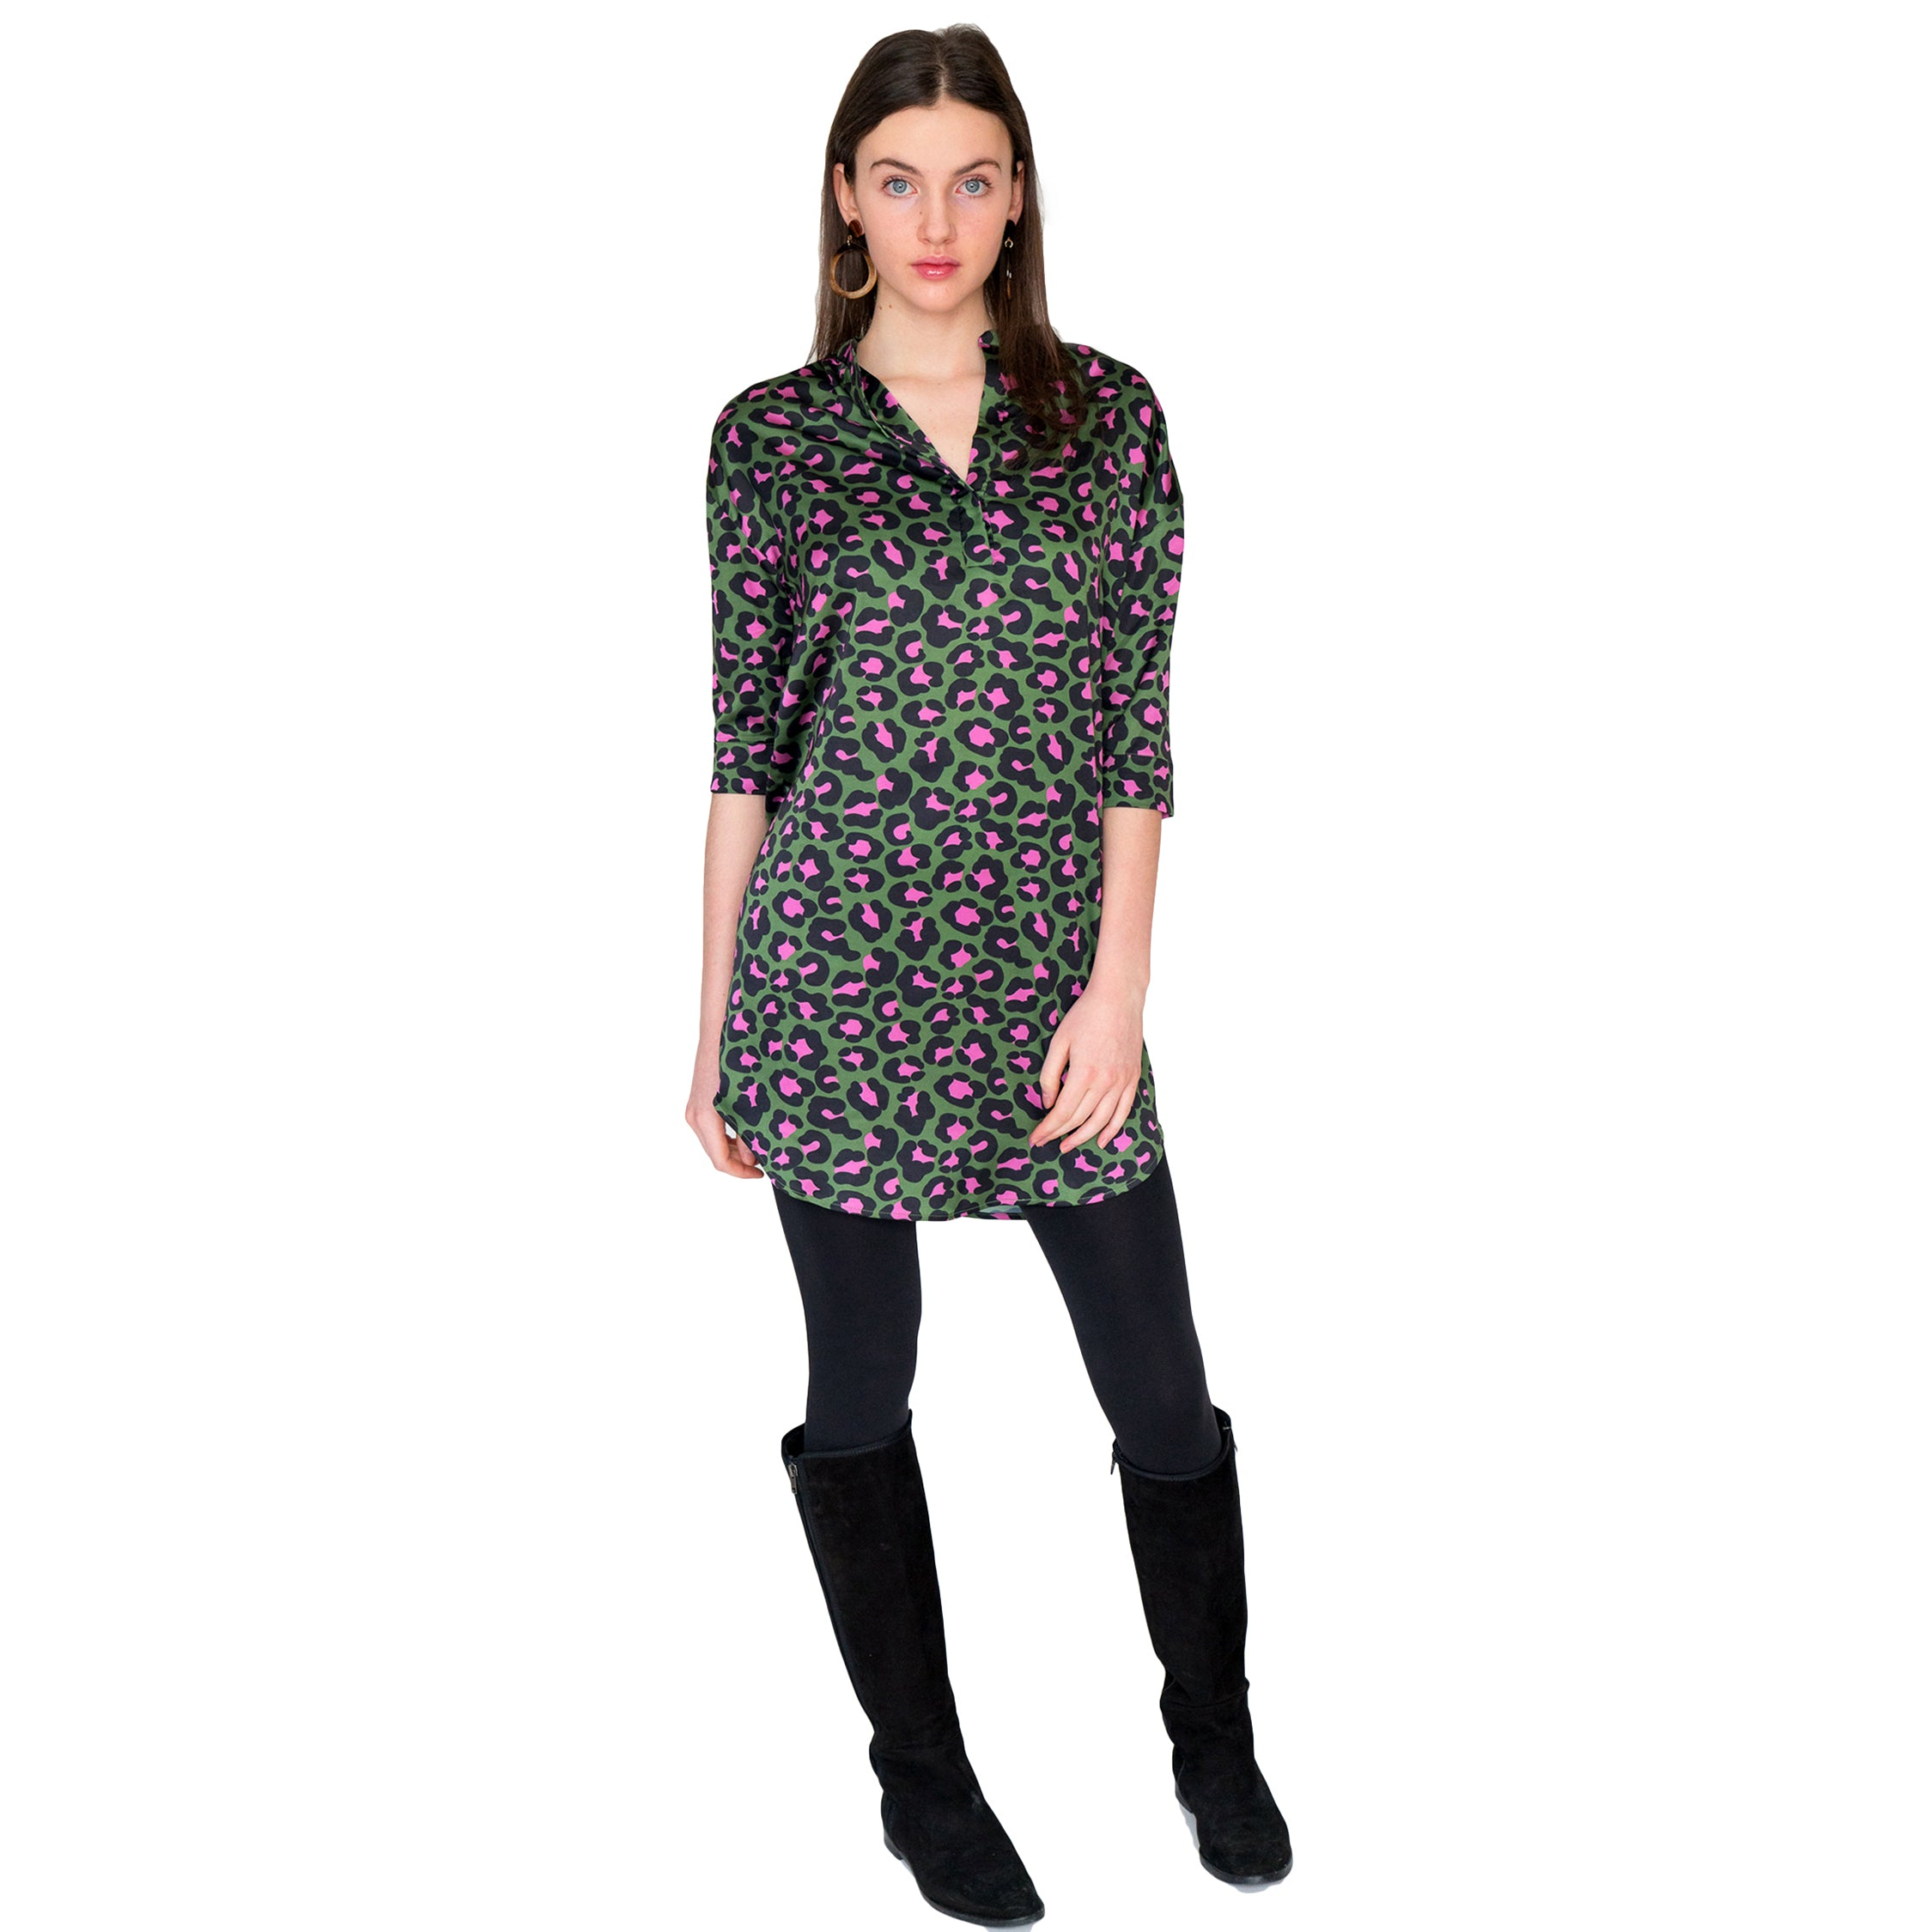 Heather Mandarin Collar Tunic in Olive Leopard - Elizabeth Ackerman New York